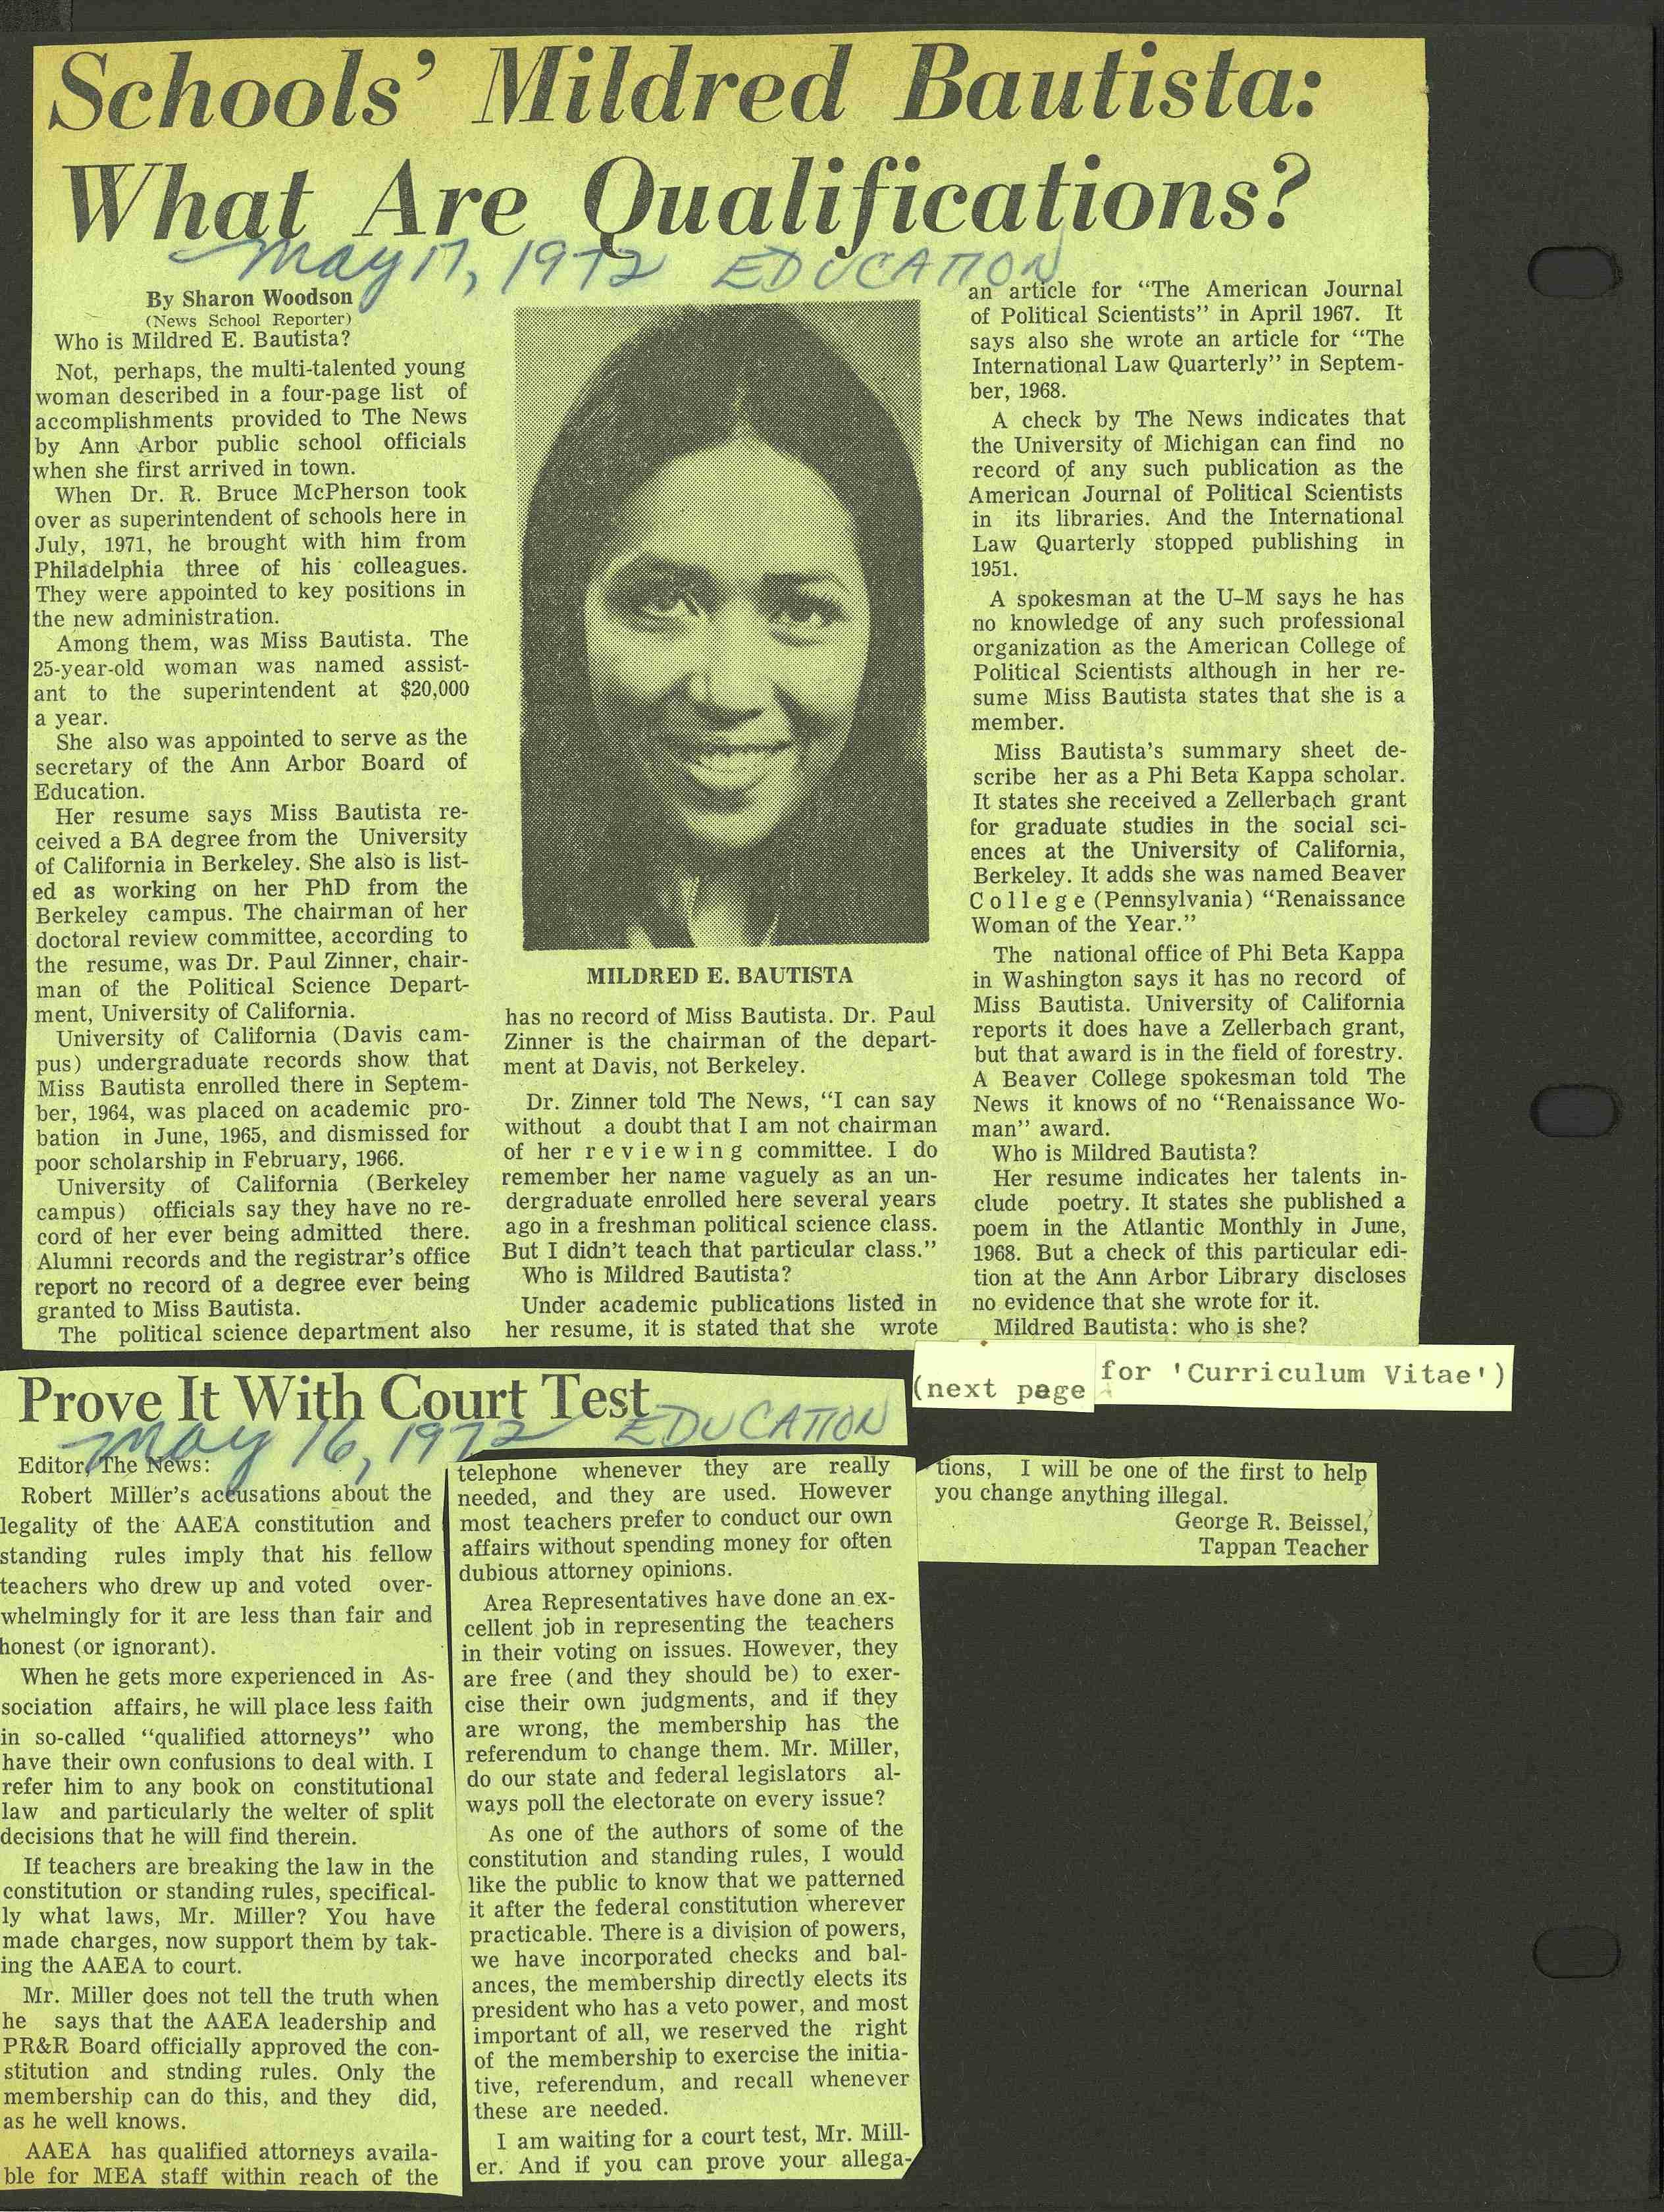 schools mildred bautista what are qualifications old news day